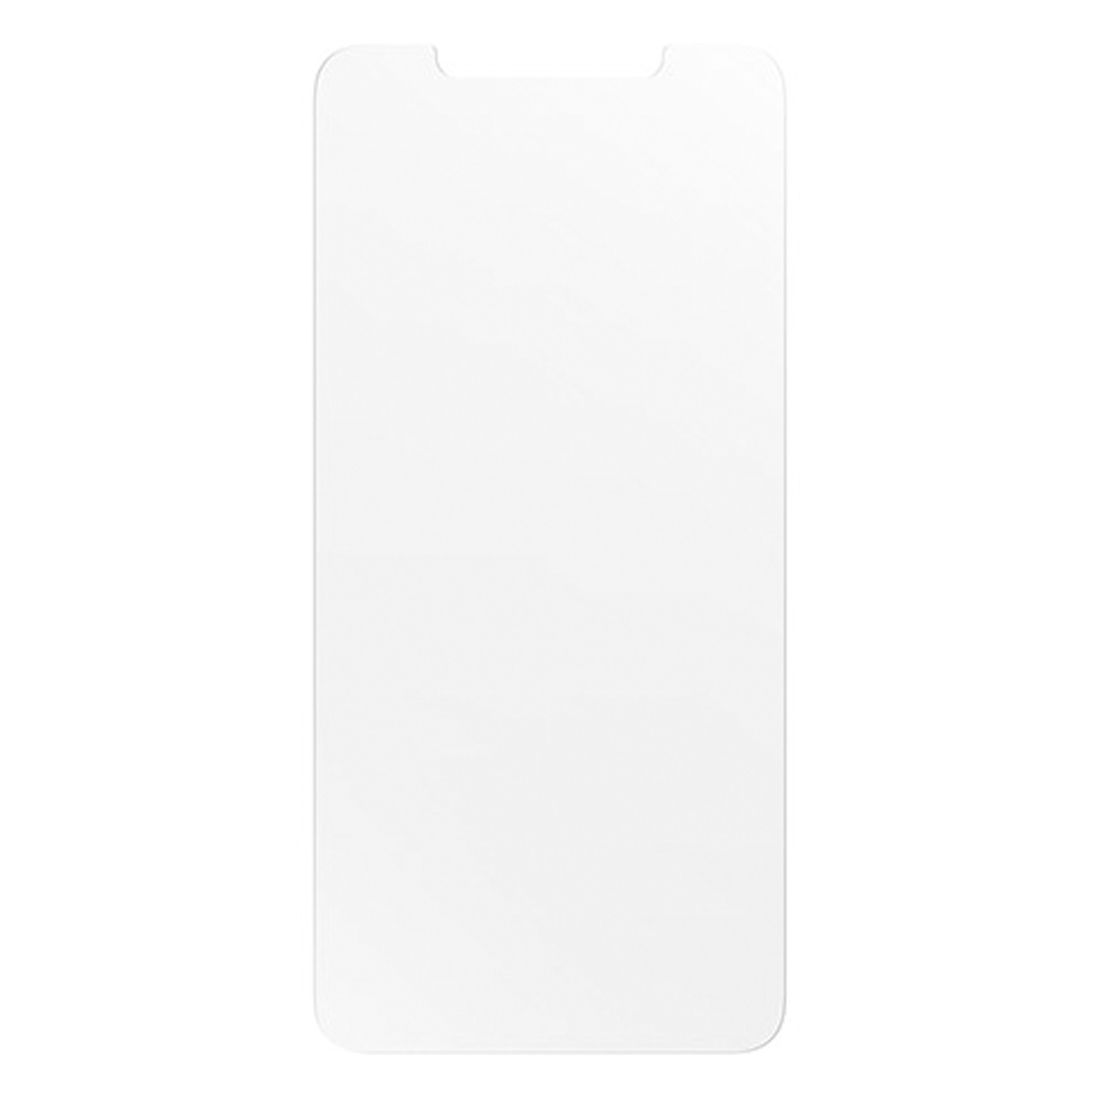 Otterbox Alpha Glass Screen Protector for Apple iPhone 11 Pro Max